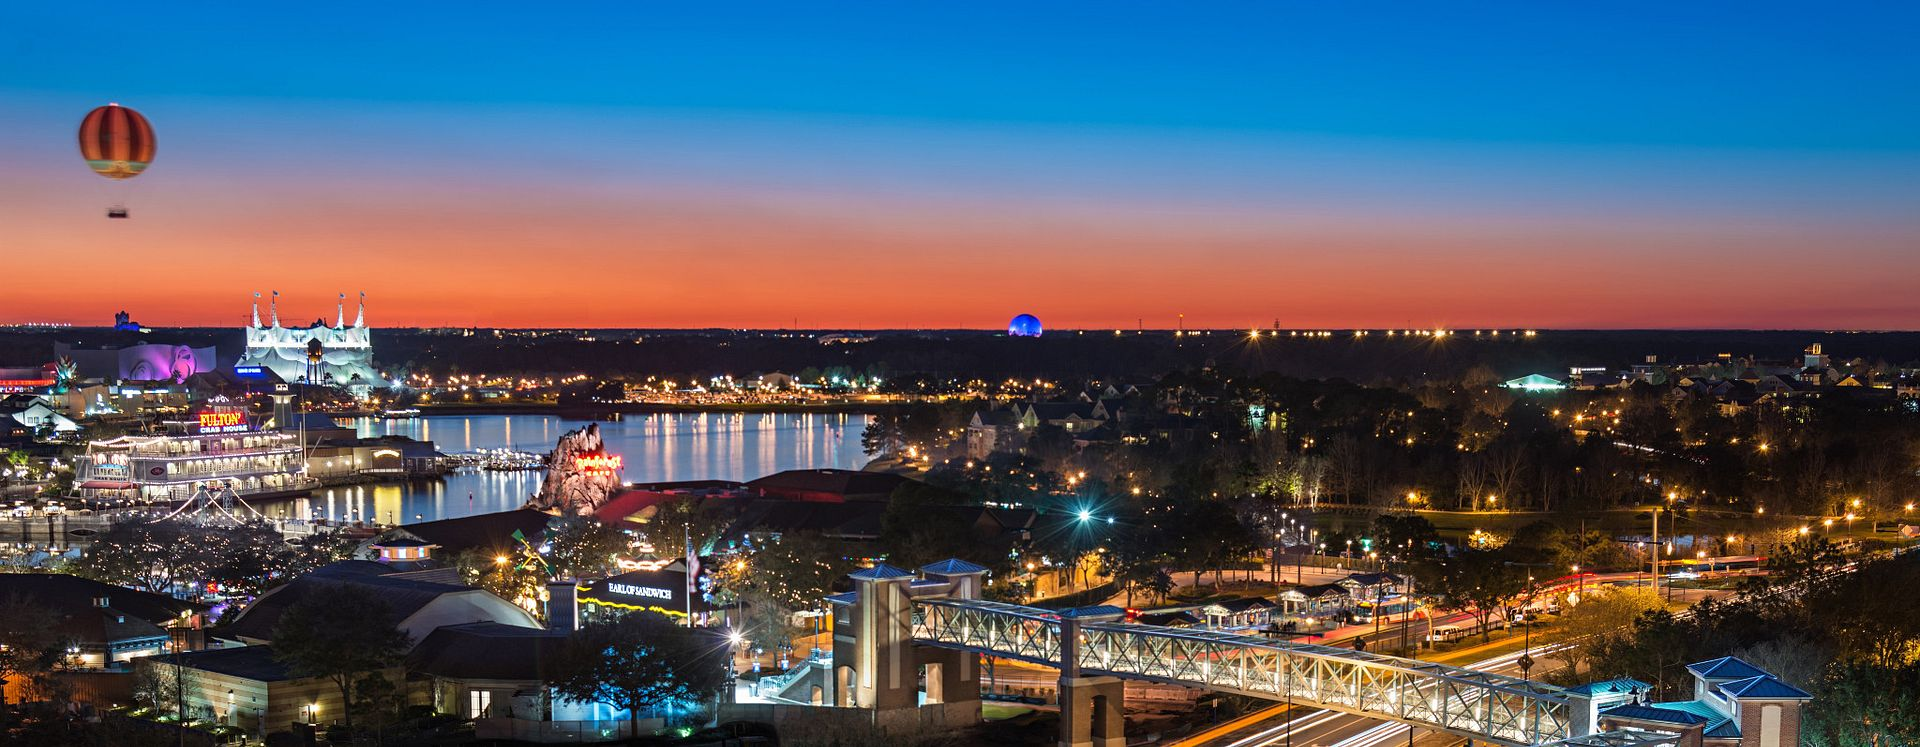 View of Disney Springs at sunset